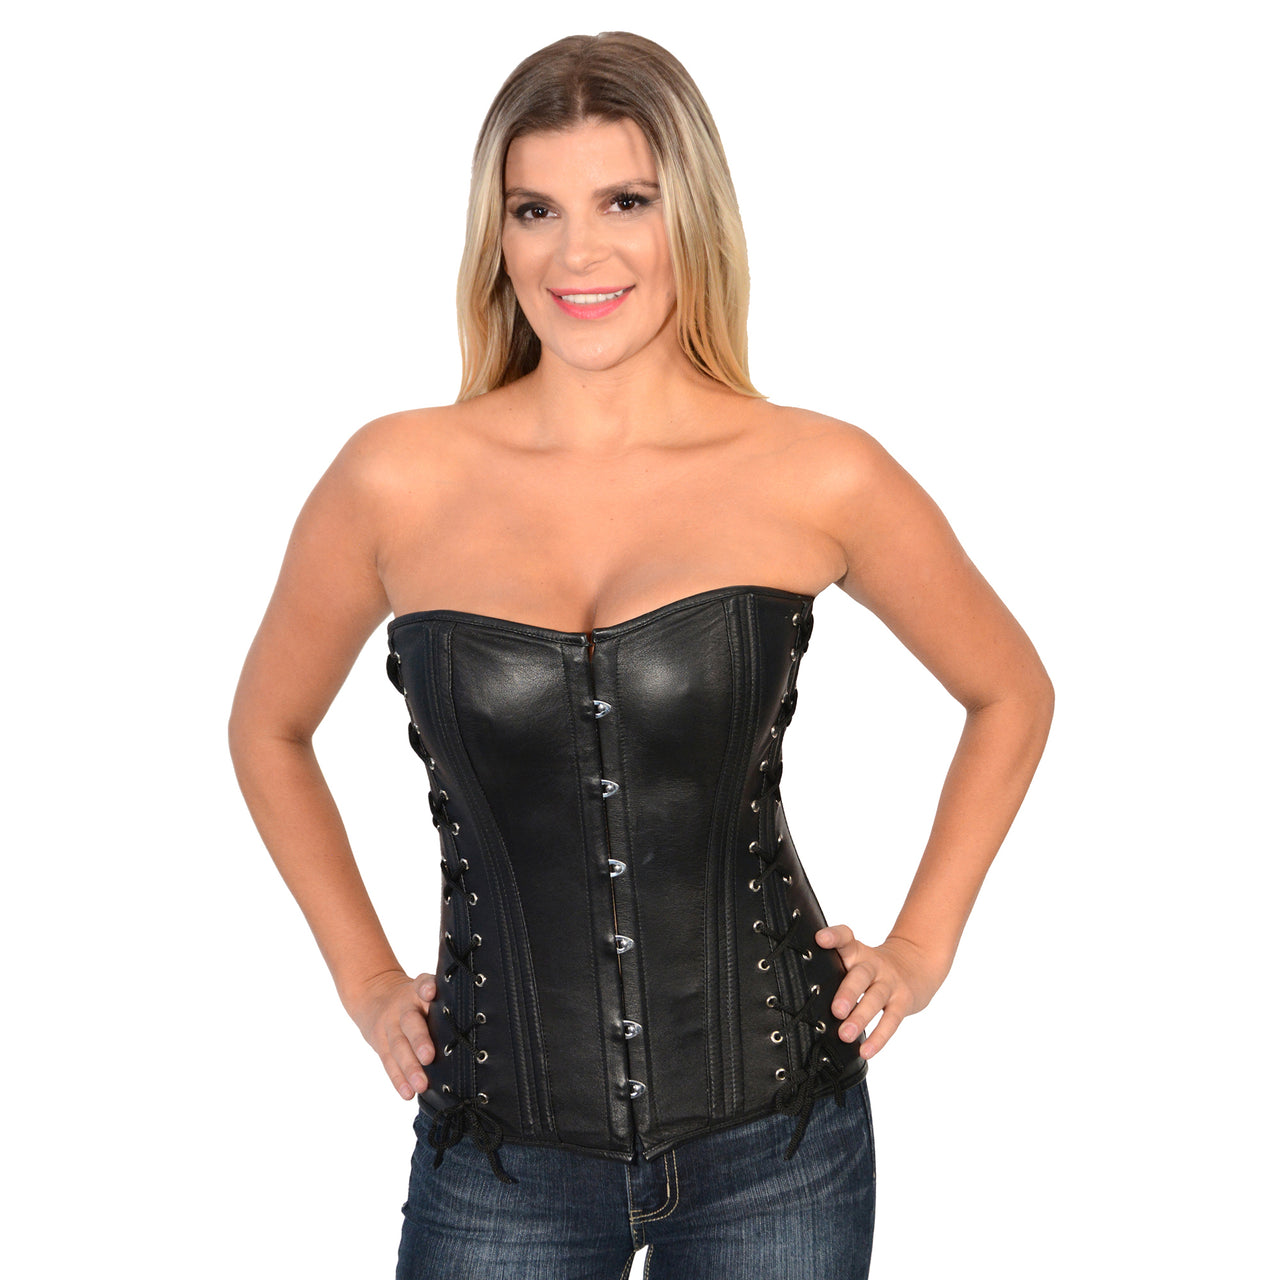 Ladies Lambskin Side Laced Corset - HighwayLeather